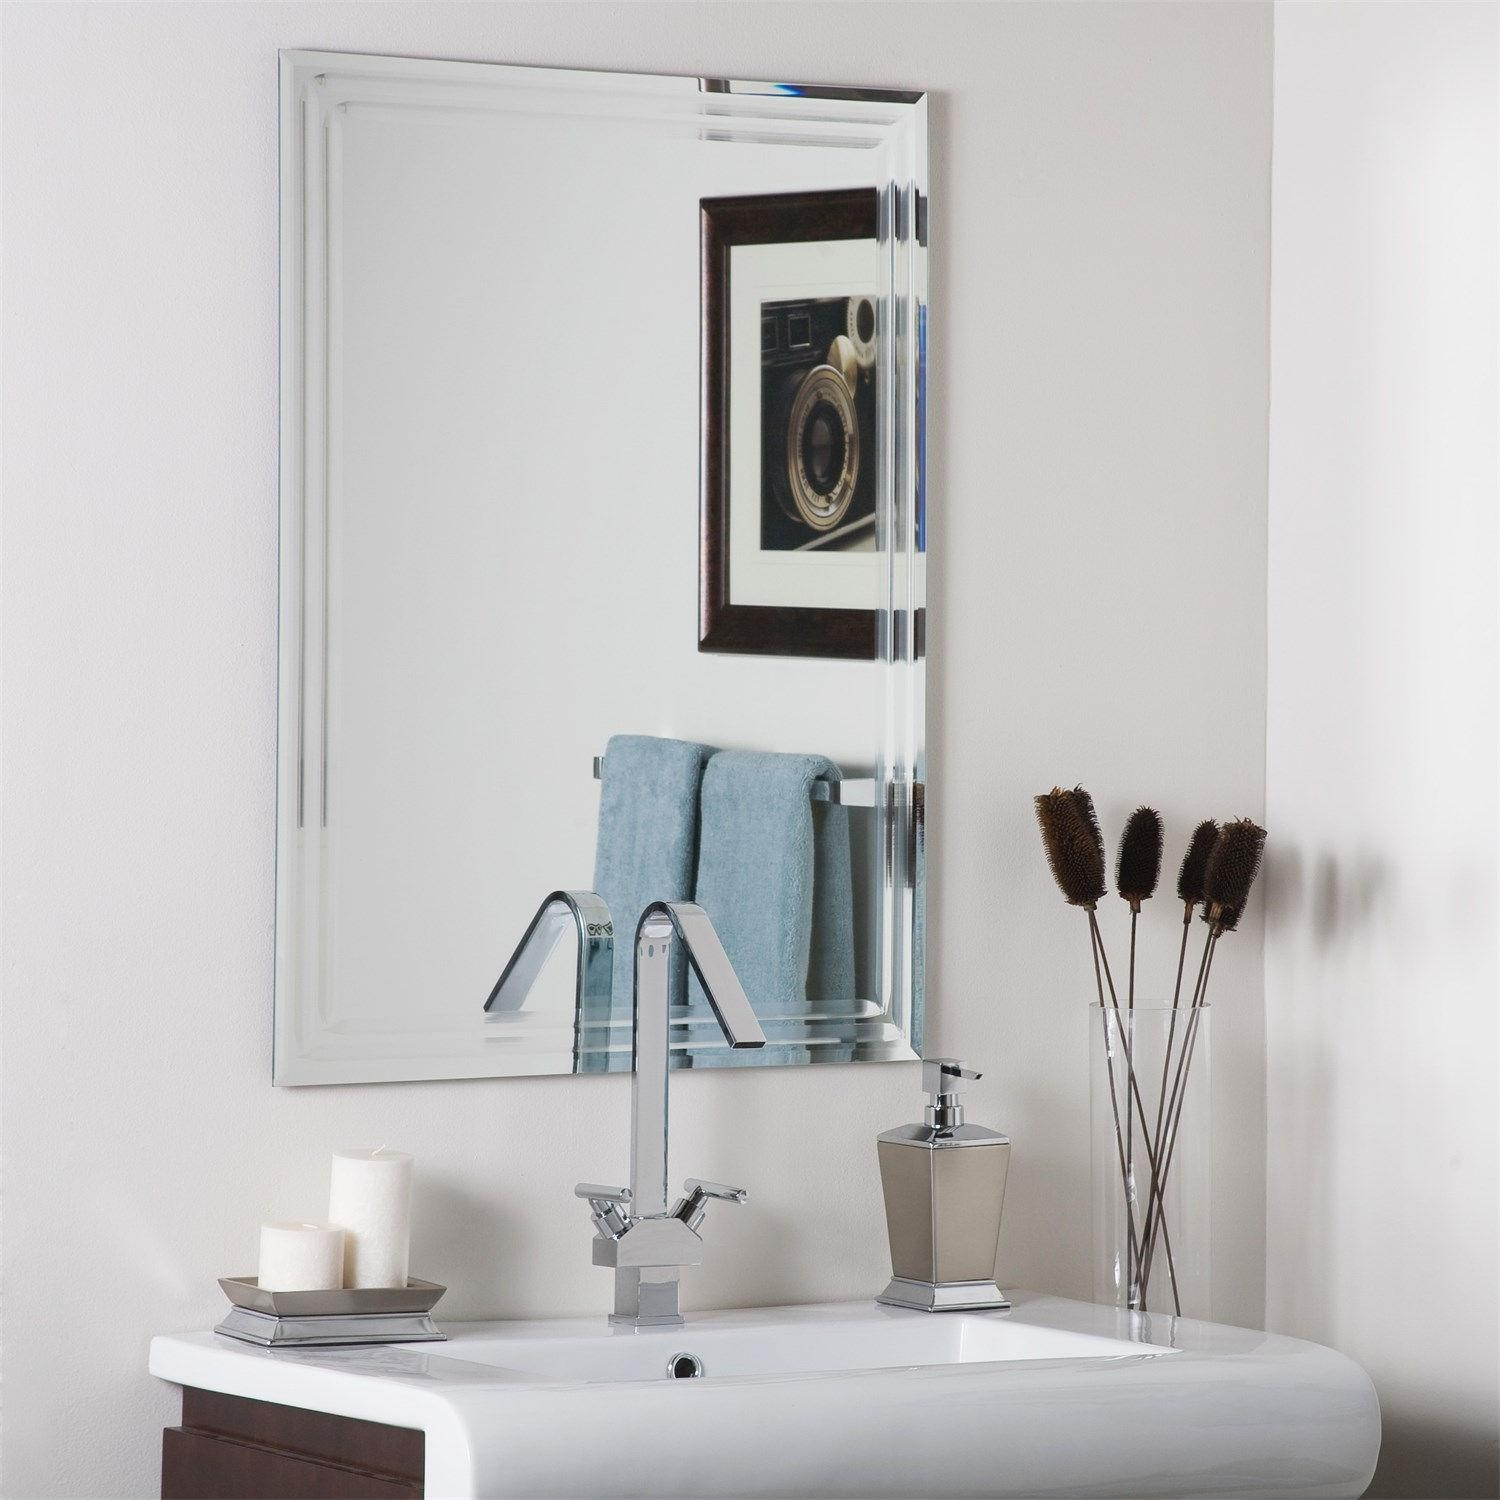 Large Bathroom Vanity Mirrors 20 43 Extra Wide Bathroom Mirrors Mirror Ideas